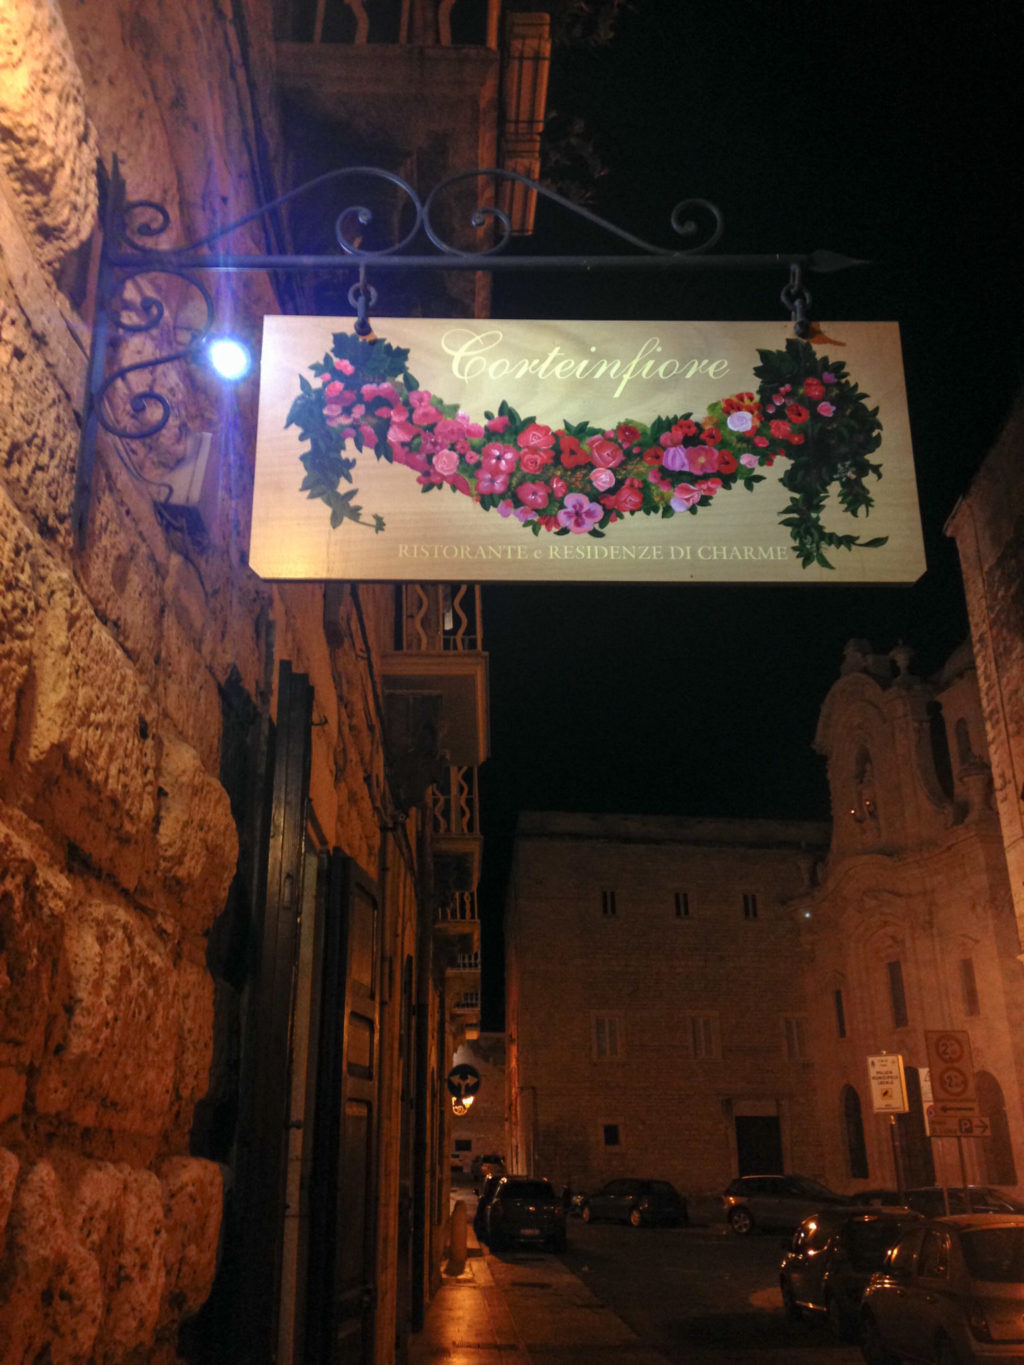 Corteinfiore Ristorante in Trani, Puglia, Italy. Photo by Gloria J. Chang.